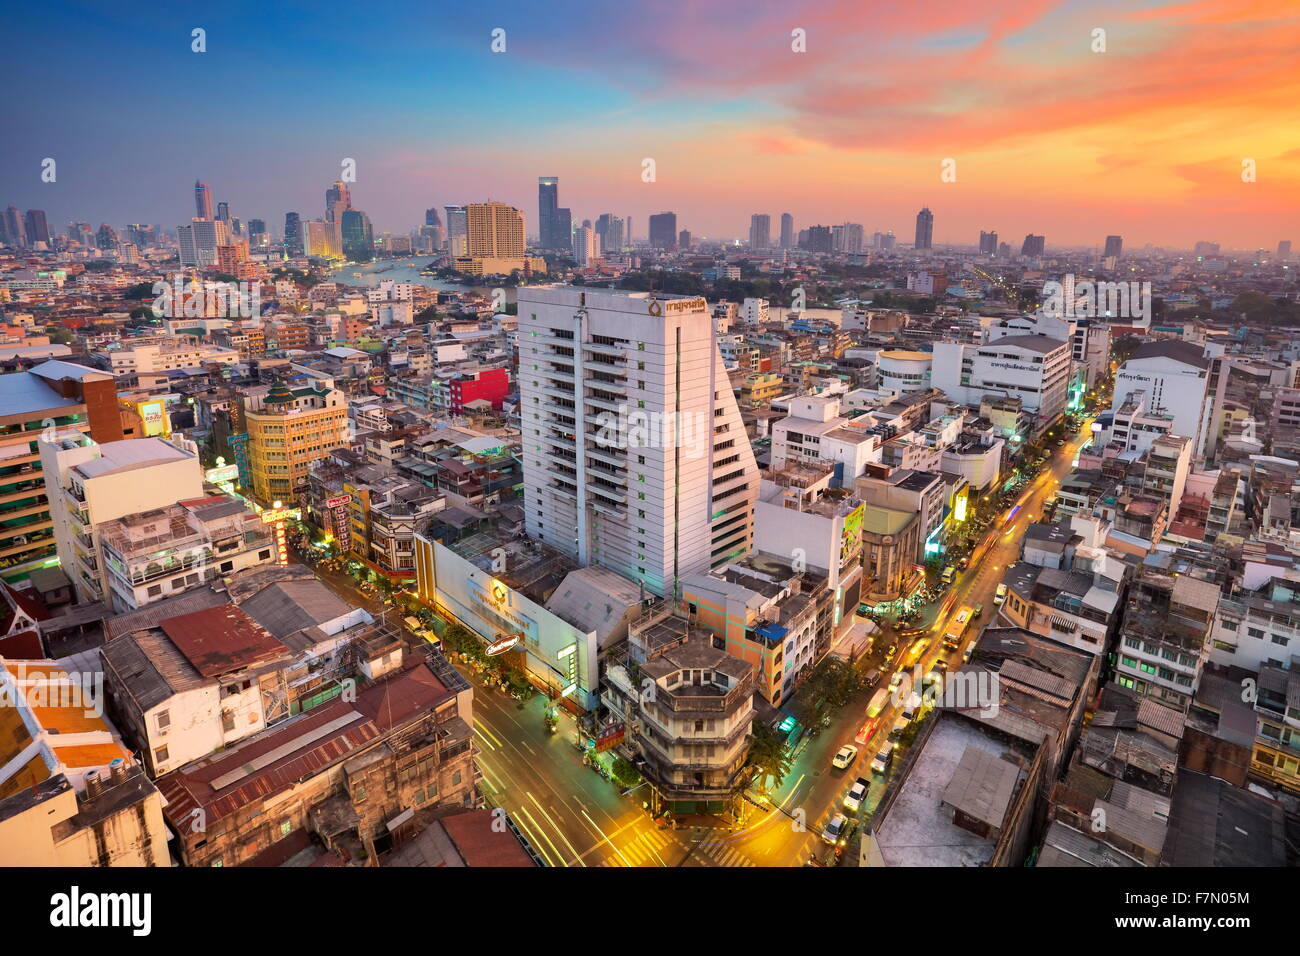 Thailand - Bangkok cityscape at sunset, Bangkok - Stock Image